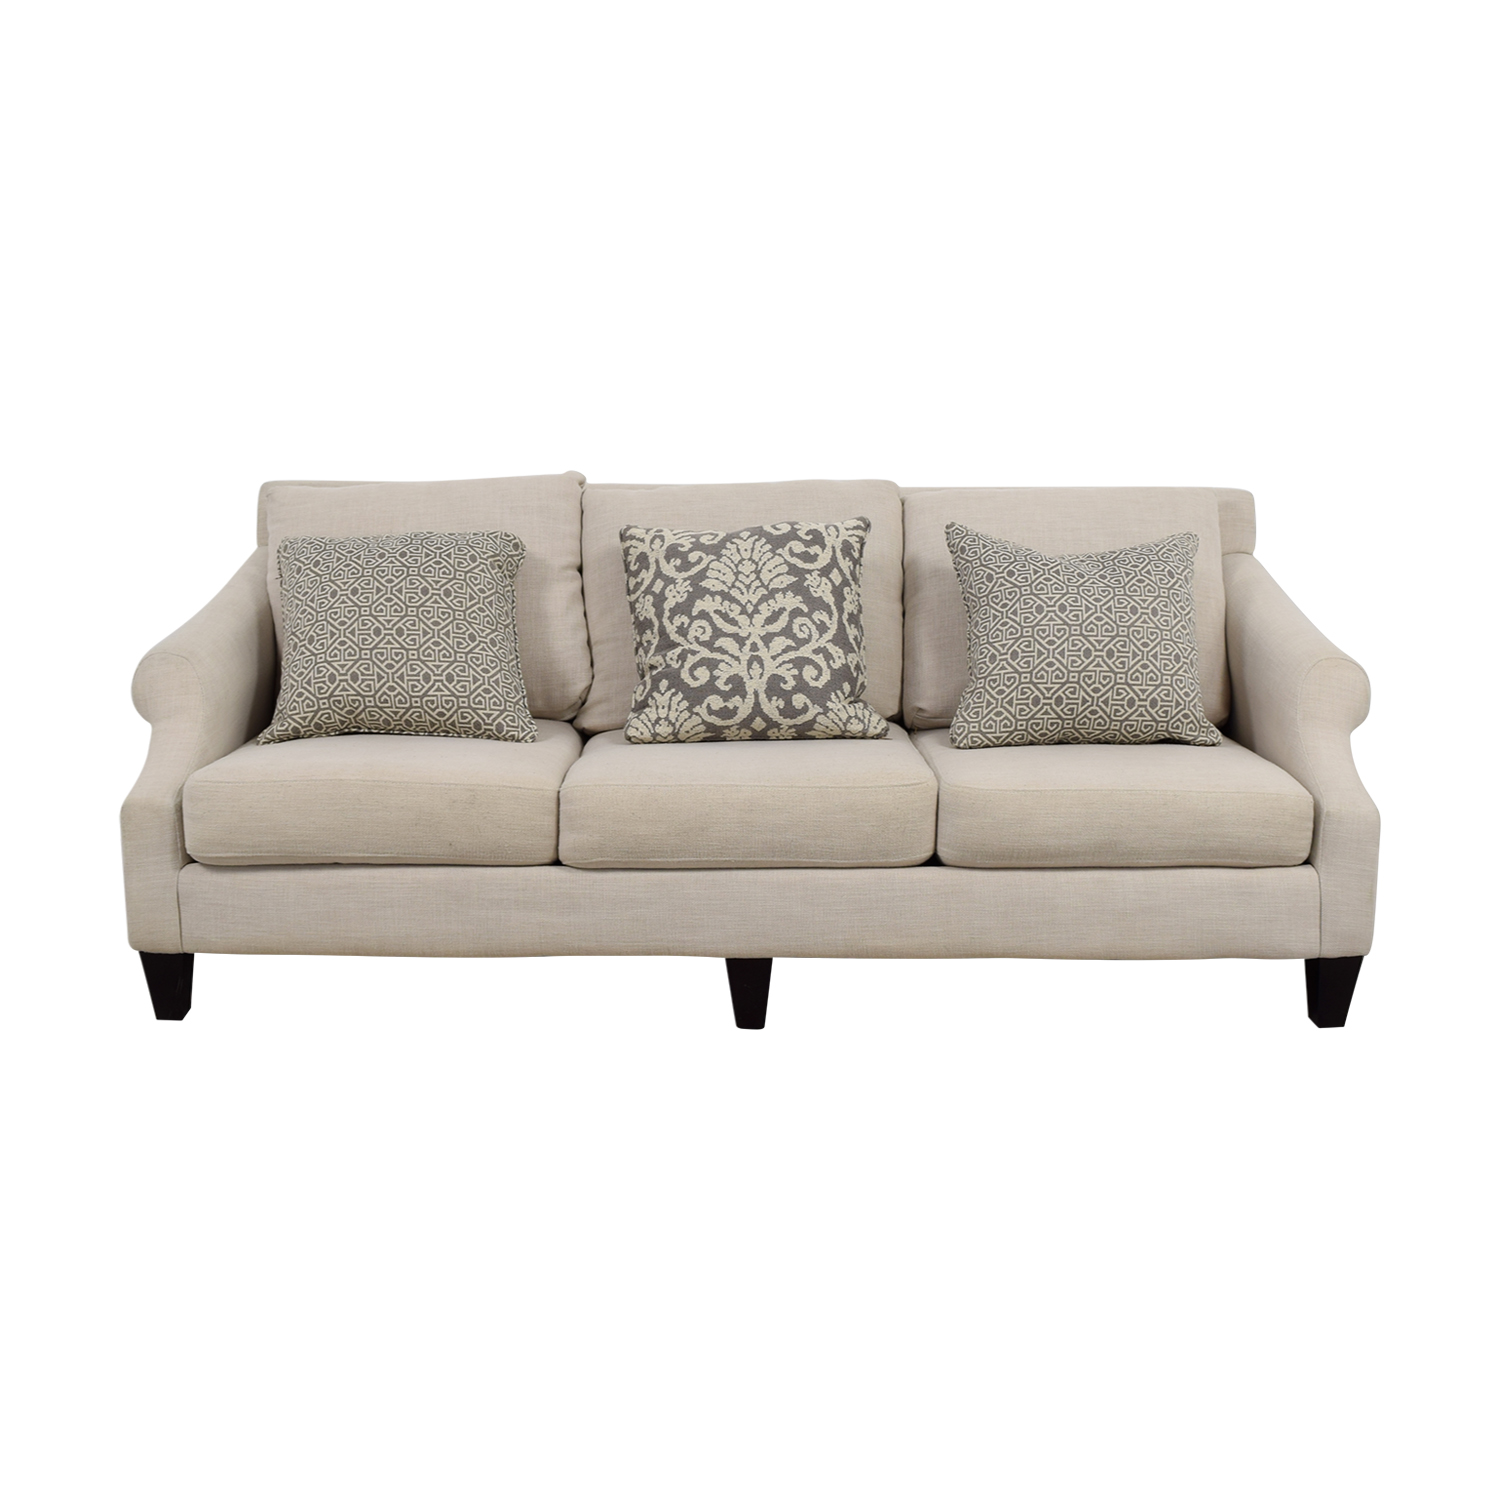 Rooms To Go Rooms To Go Off Beige Three-Cushion Couch price